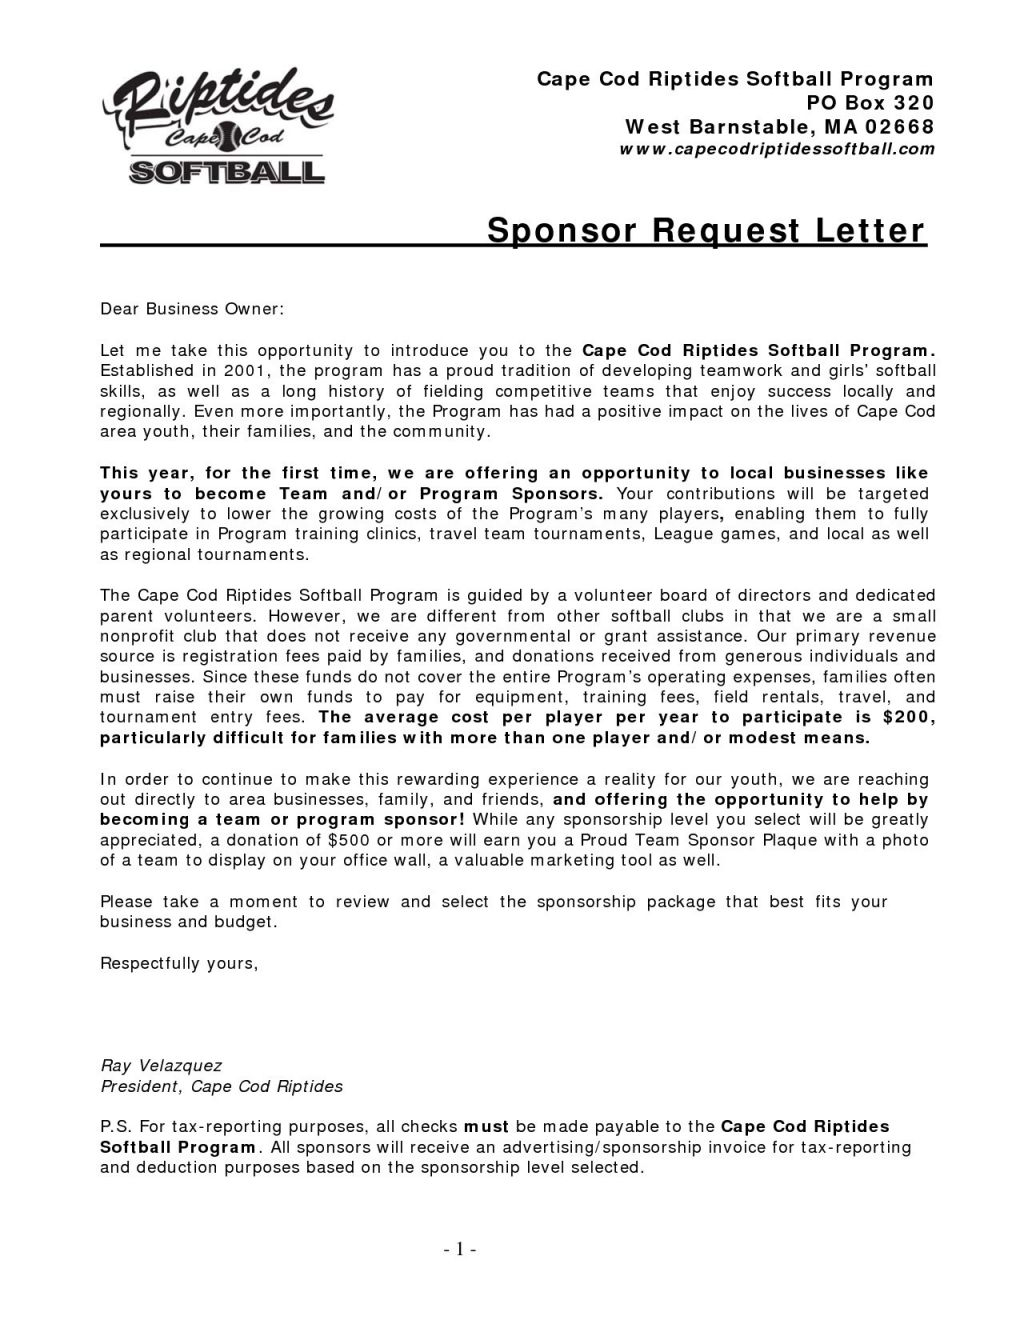 Youth Baseball Sponsorship Letter Template - Popular Letter asking for Sponsors Nh84 – Documentaries for Change